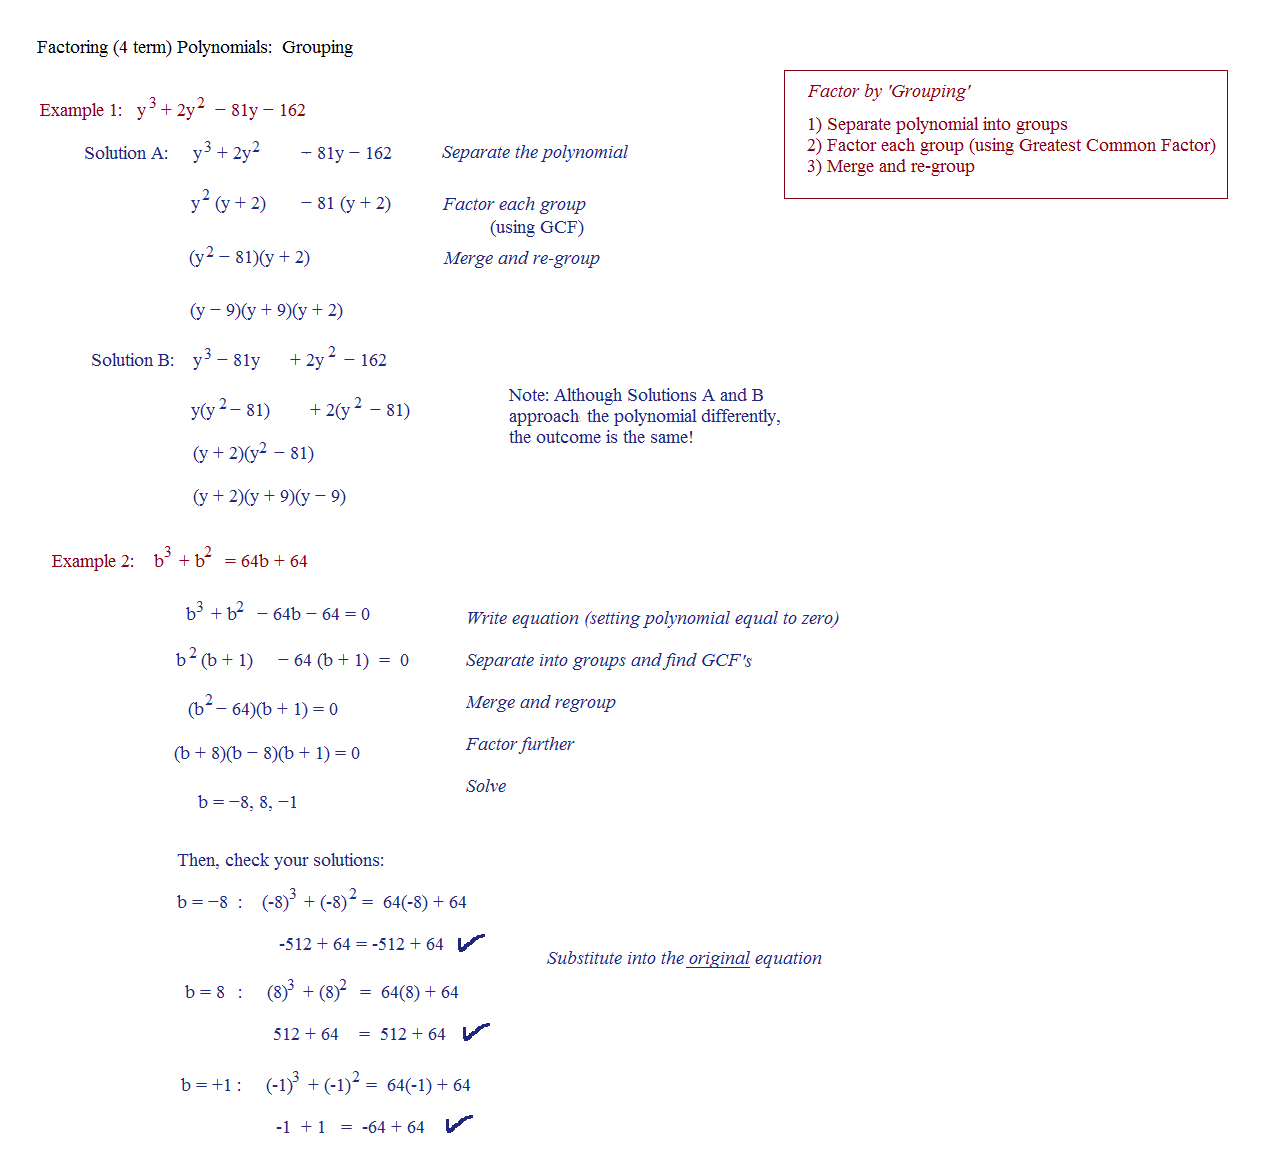 Printables Factoring Trinomials A 1 Worksheet Answers Happywheelsfreak Thousands Of Printable